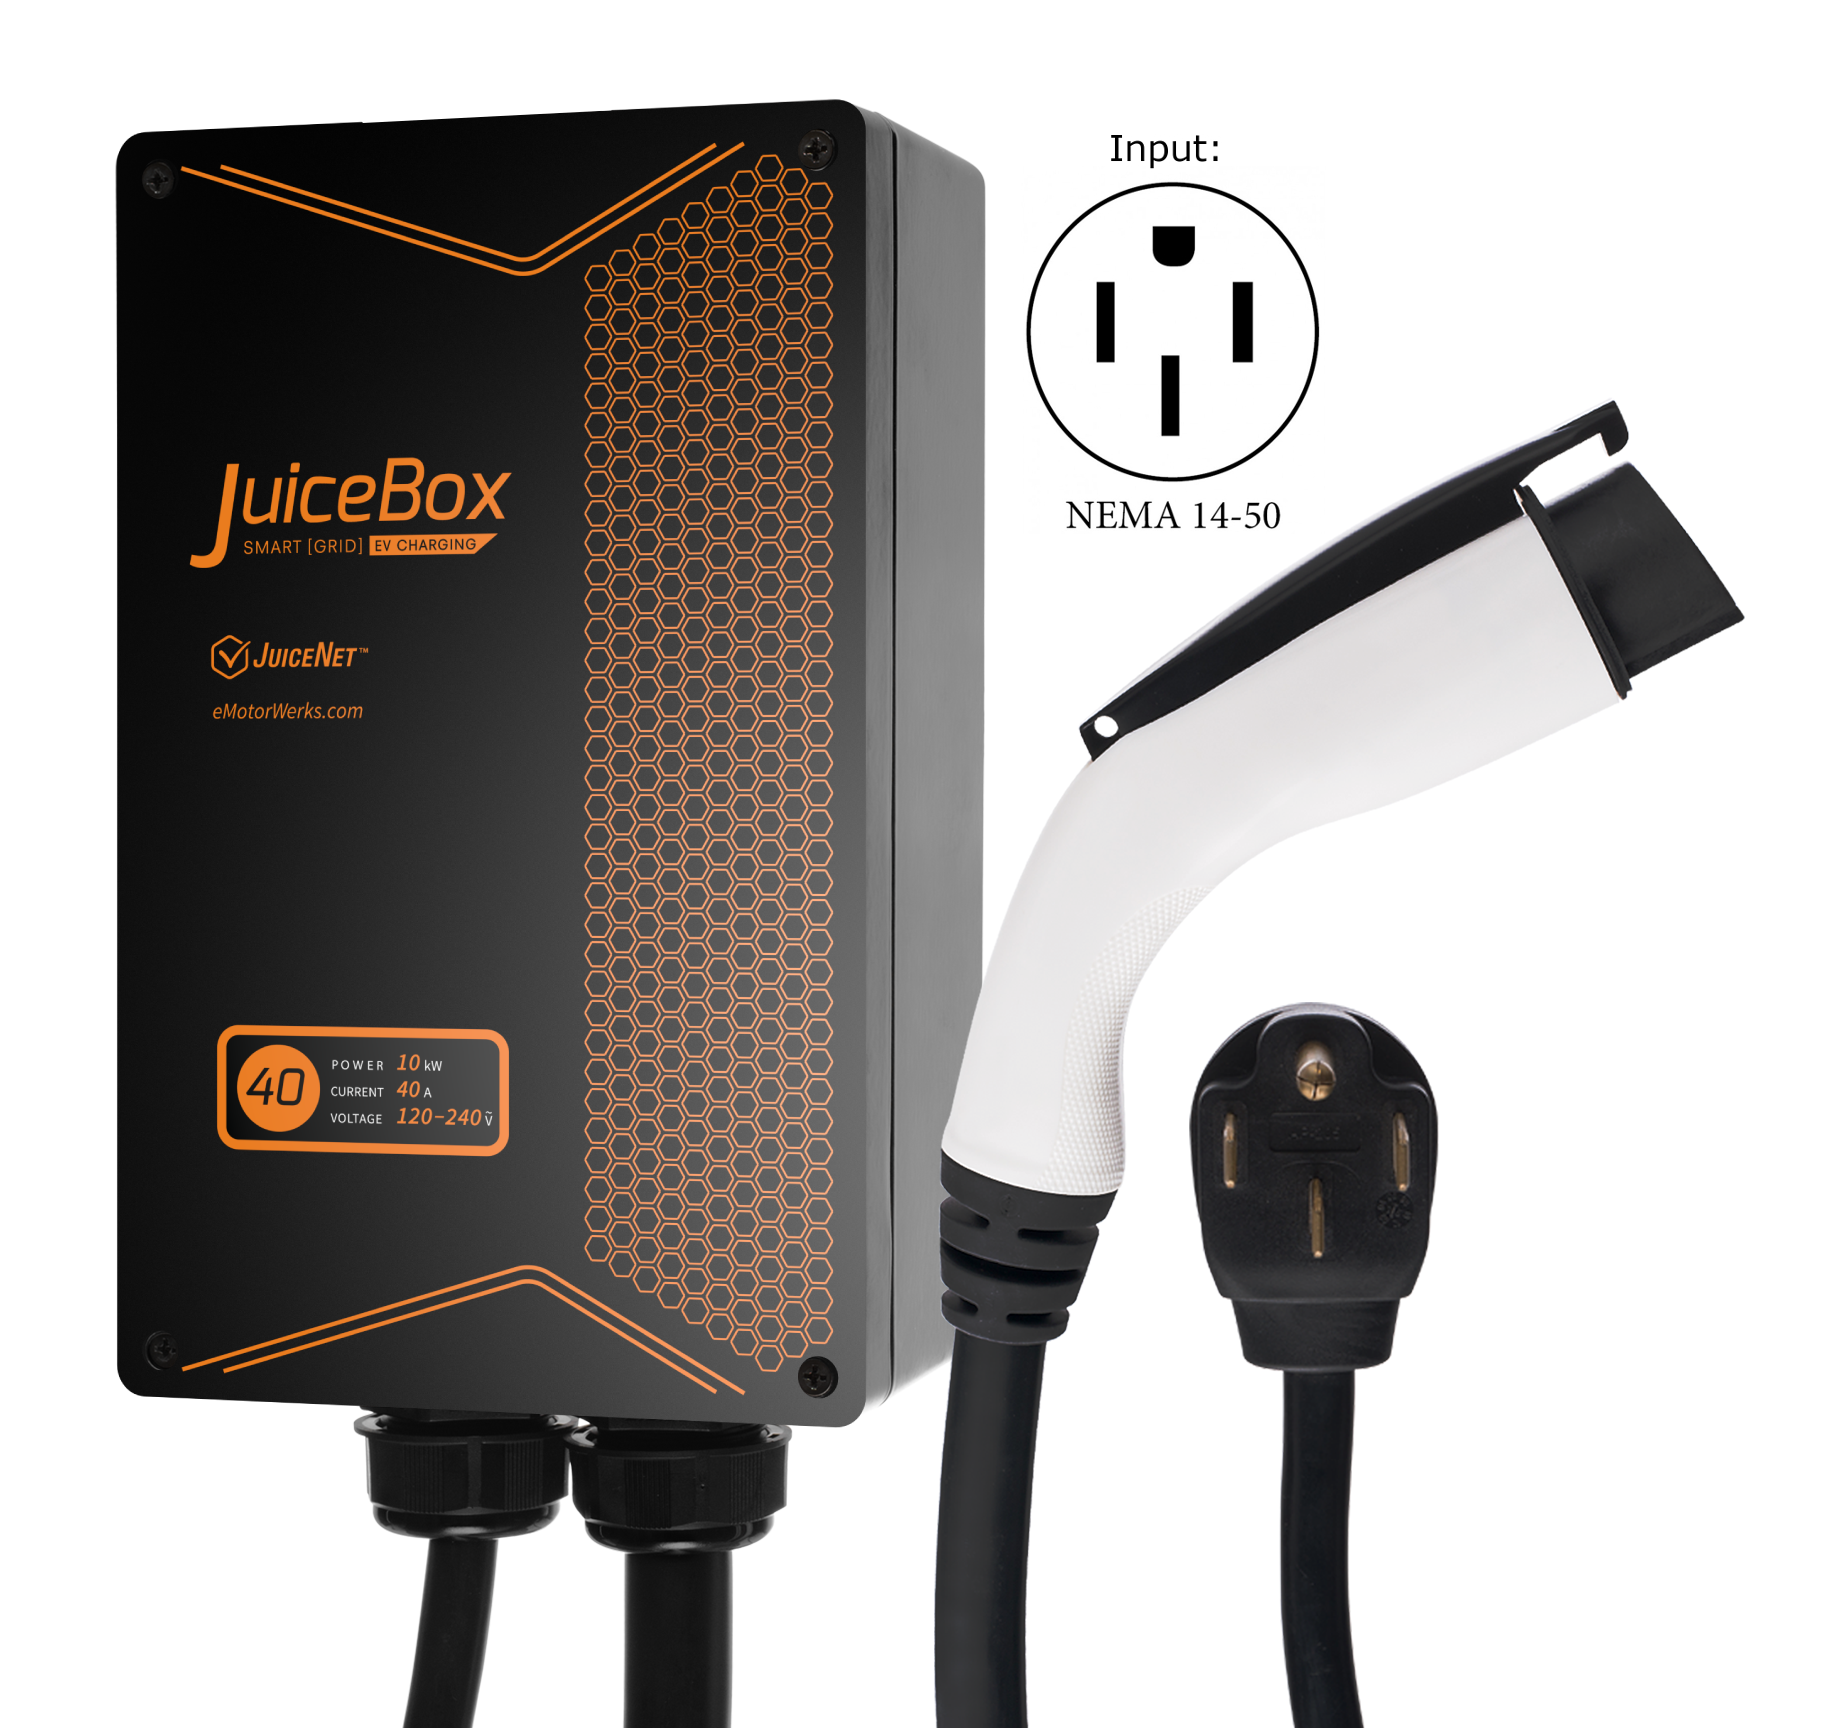 JuiceBox 40A Plug-in Electric Car Vehicle Charger/Charging Station with 24' Cable and NEMA 14-50 Plug JB40